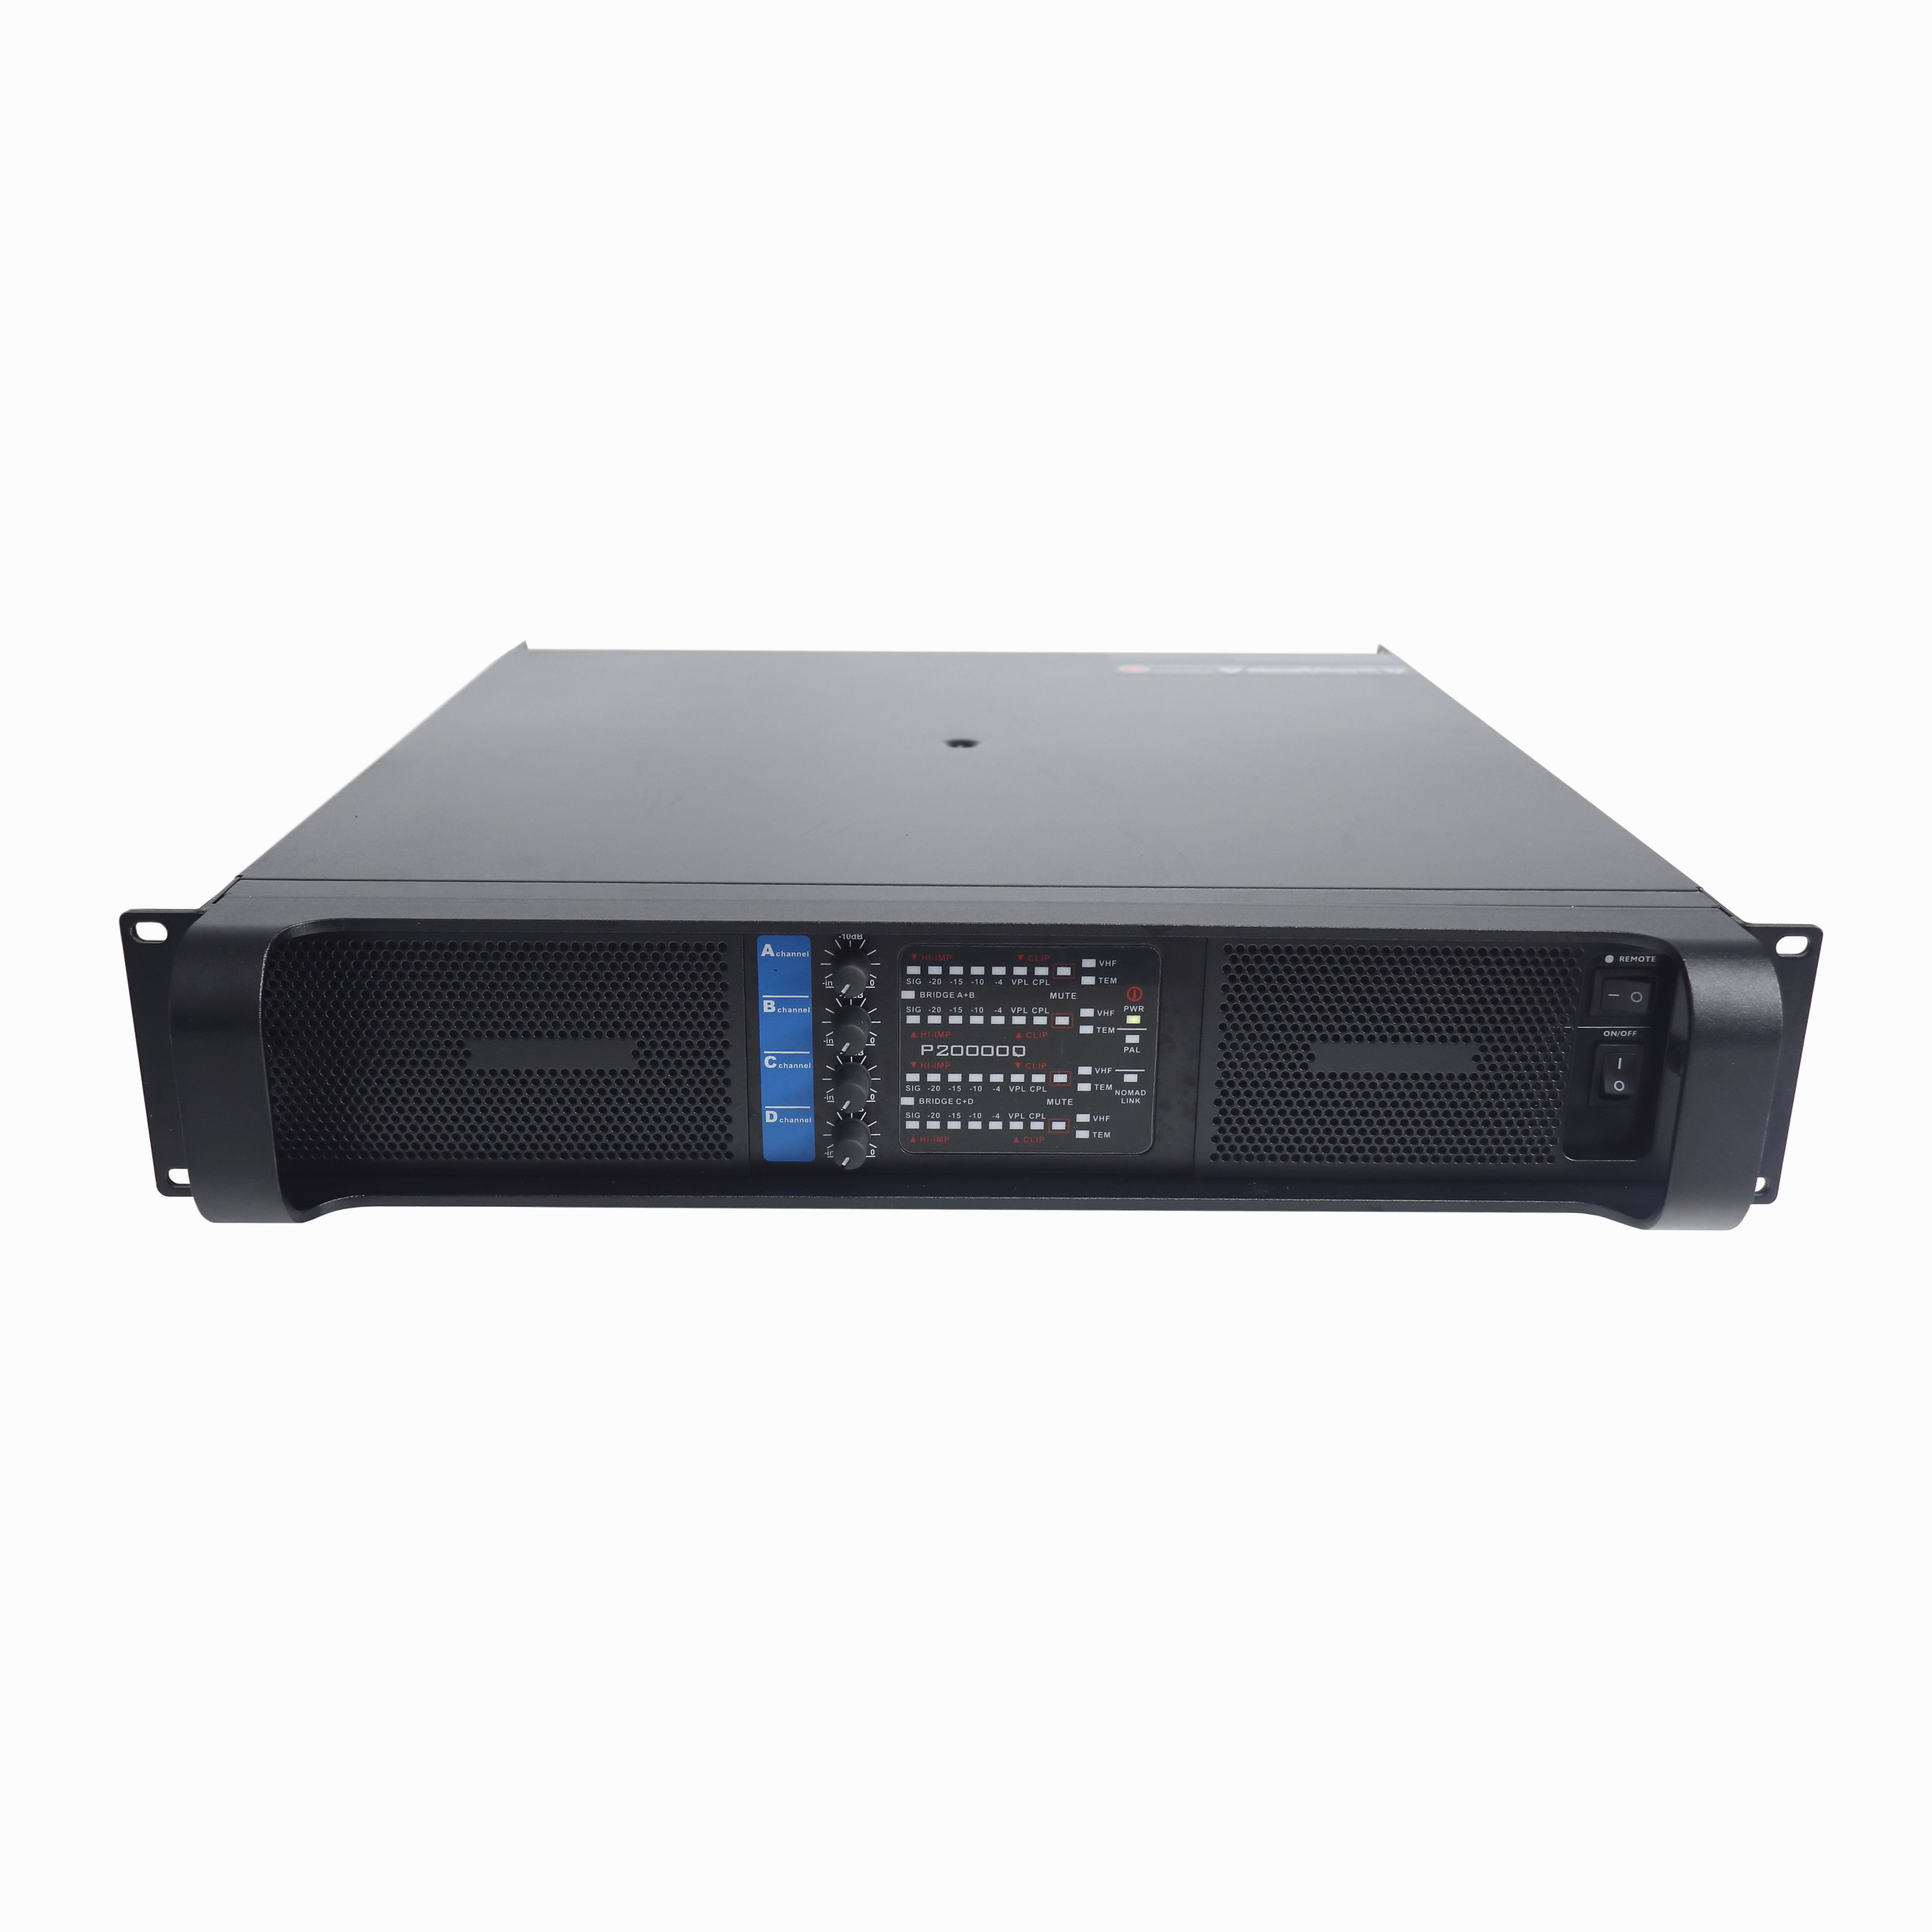 Leicozic 20000q 4 Channel Power Amplifier 7000w At 2ohms Profesional Audio Subwoofer Amps Line Array For Stage Performance Special Offer 26bbb Cicig